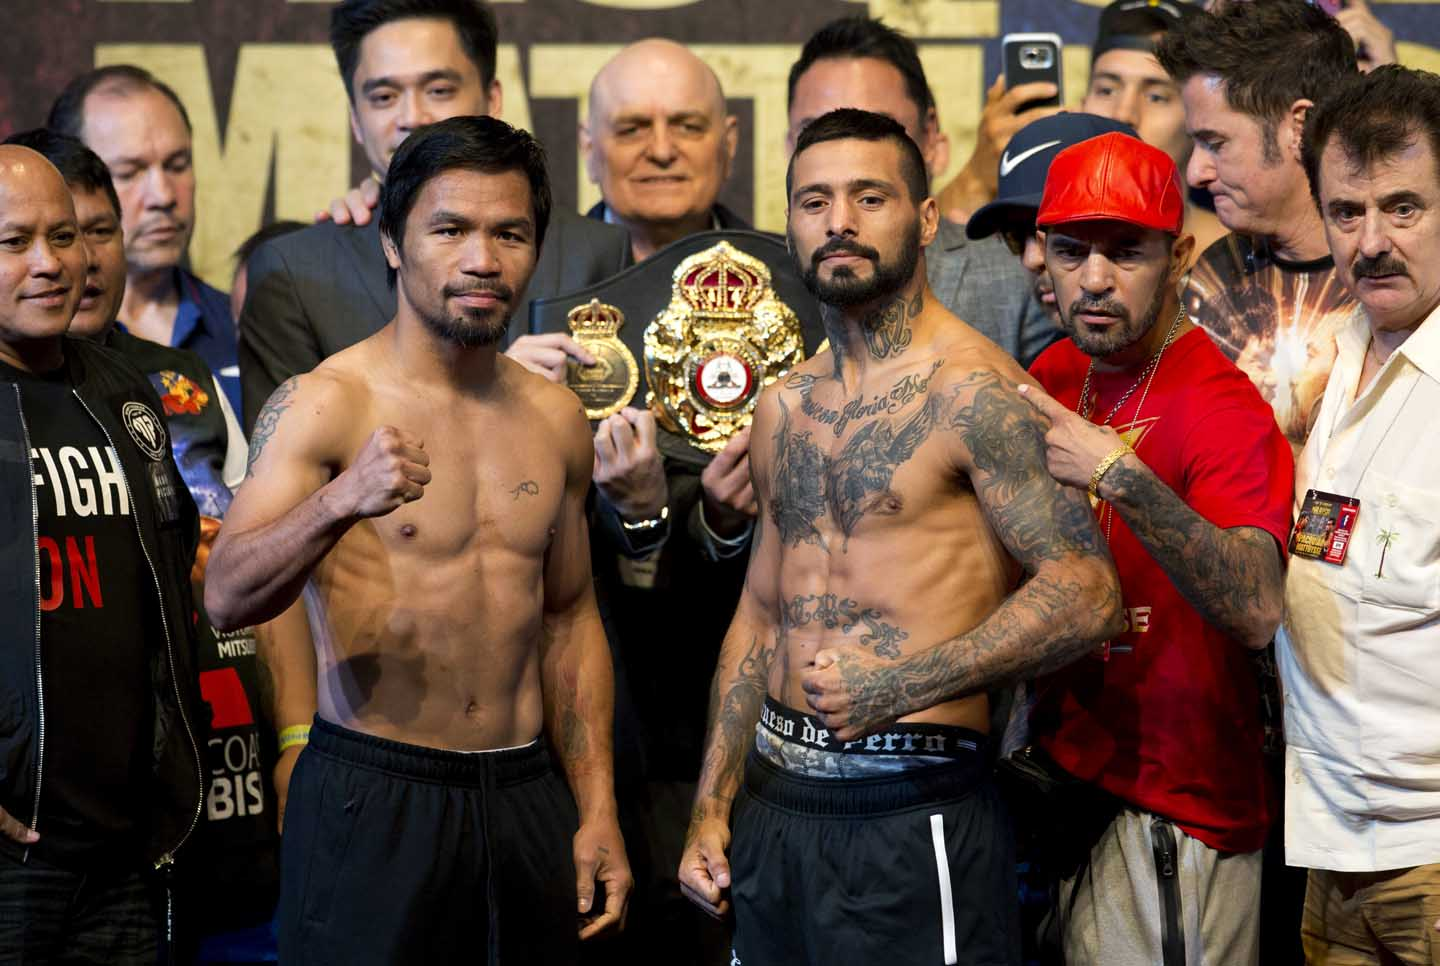 Philippine senator and boxing hero Manny Pacquiao (left) and Argentine World Boxing Association welterweight champion Lucas Matthysse pose after weigh-ins in Kuala Lumpur, Malaysia on Saturday. Matthysse and Pacquiao are scheduled to fight on July 15 for the World Boxing Association welterweight title in Malaysia.